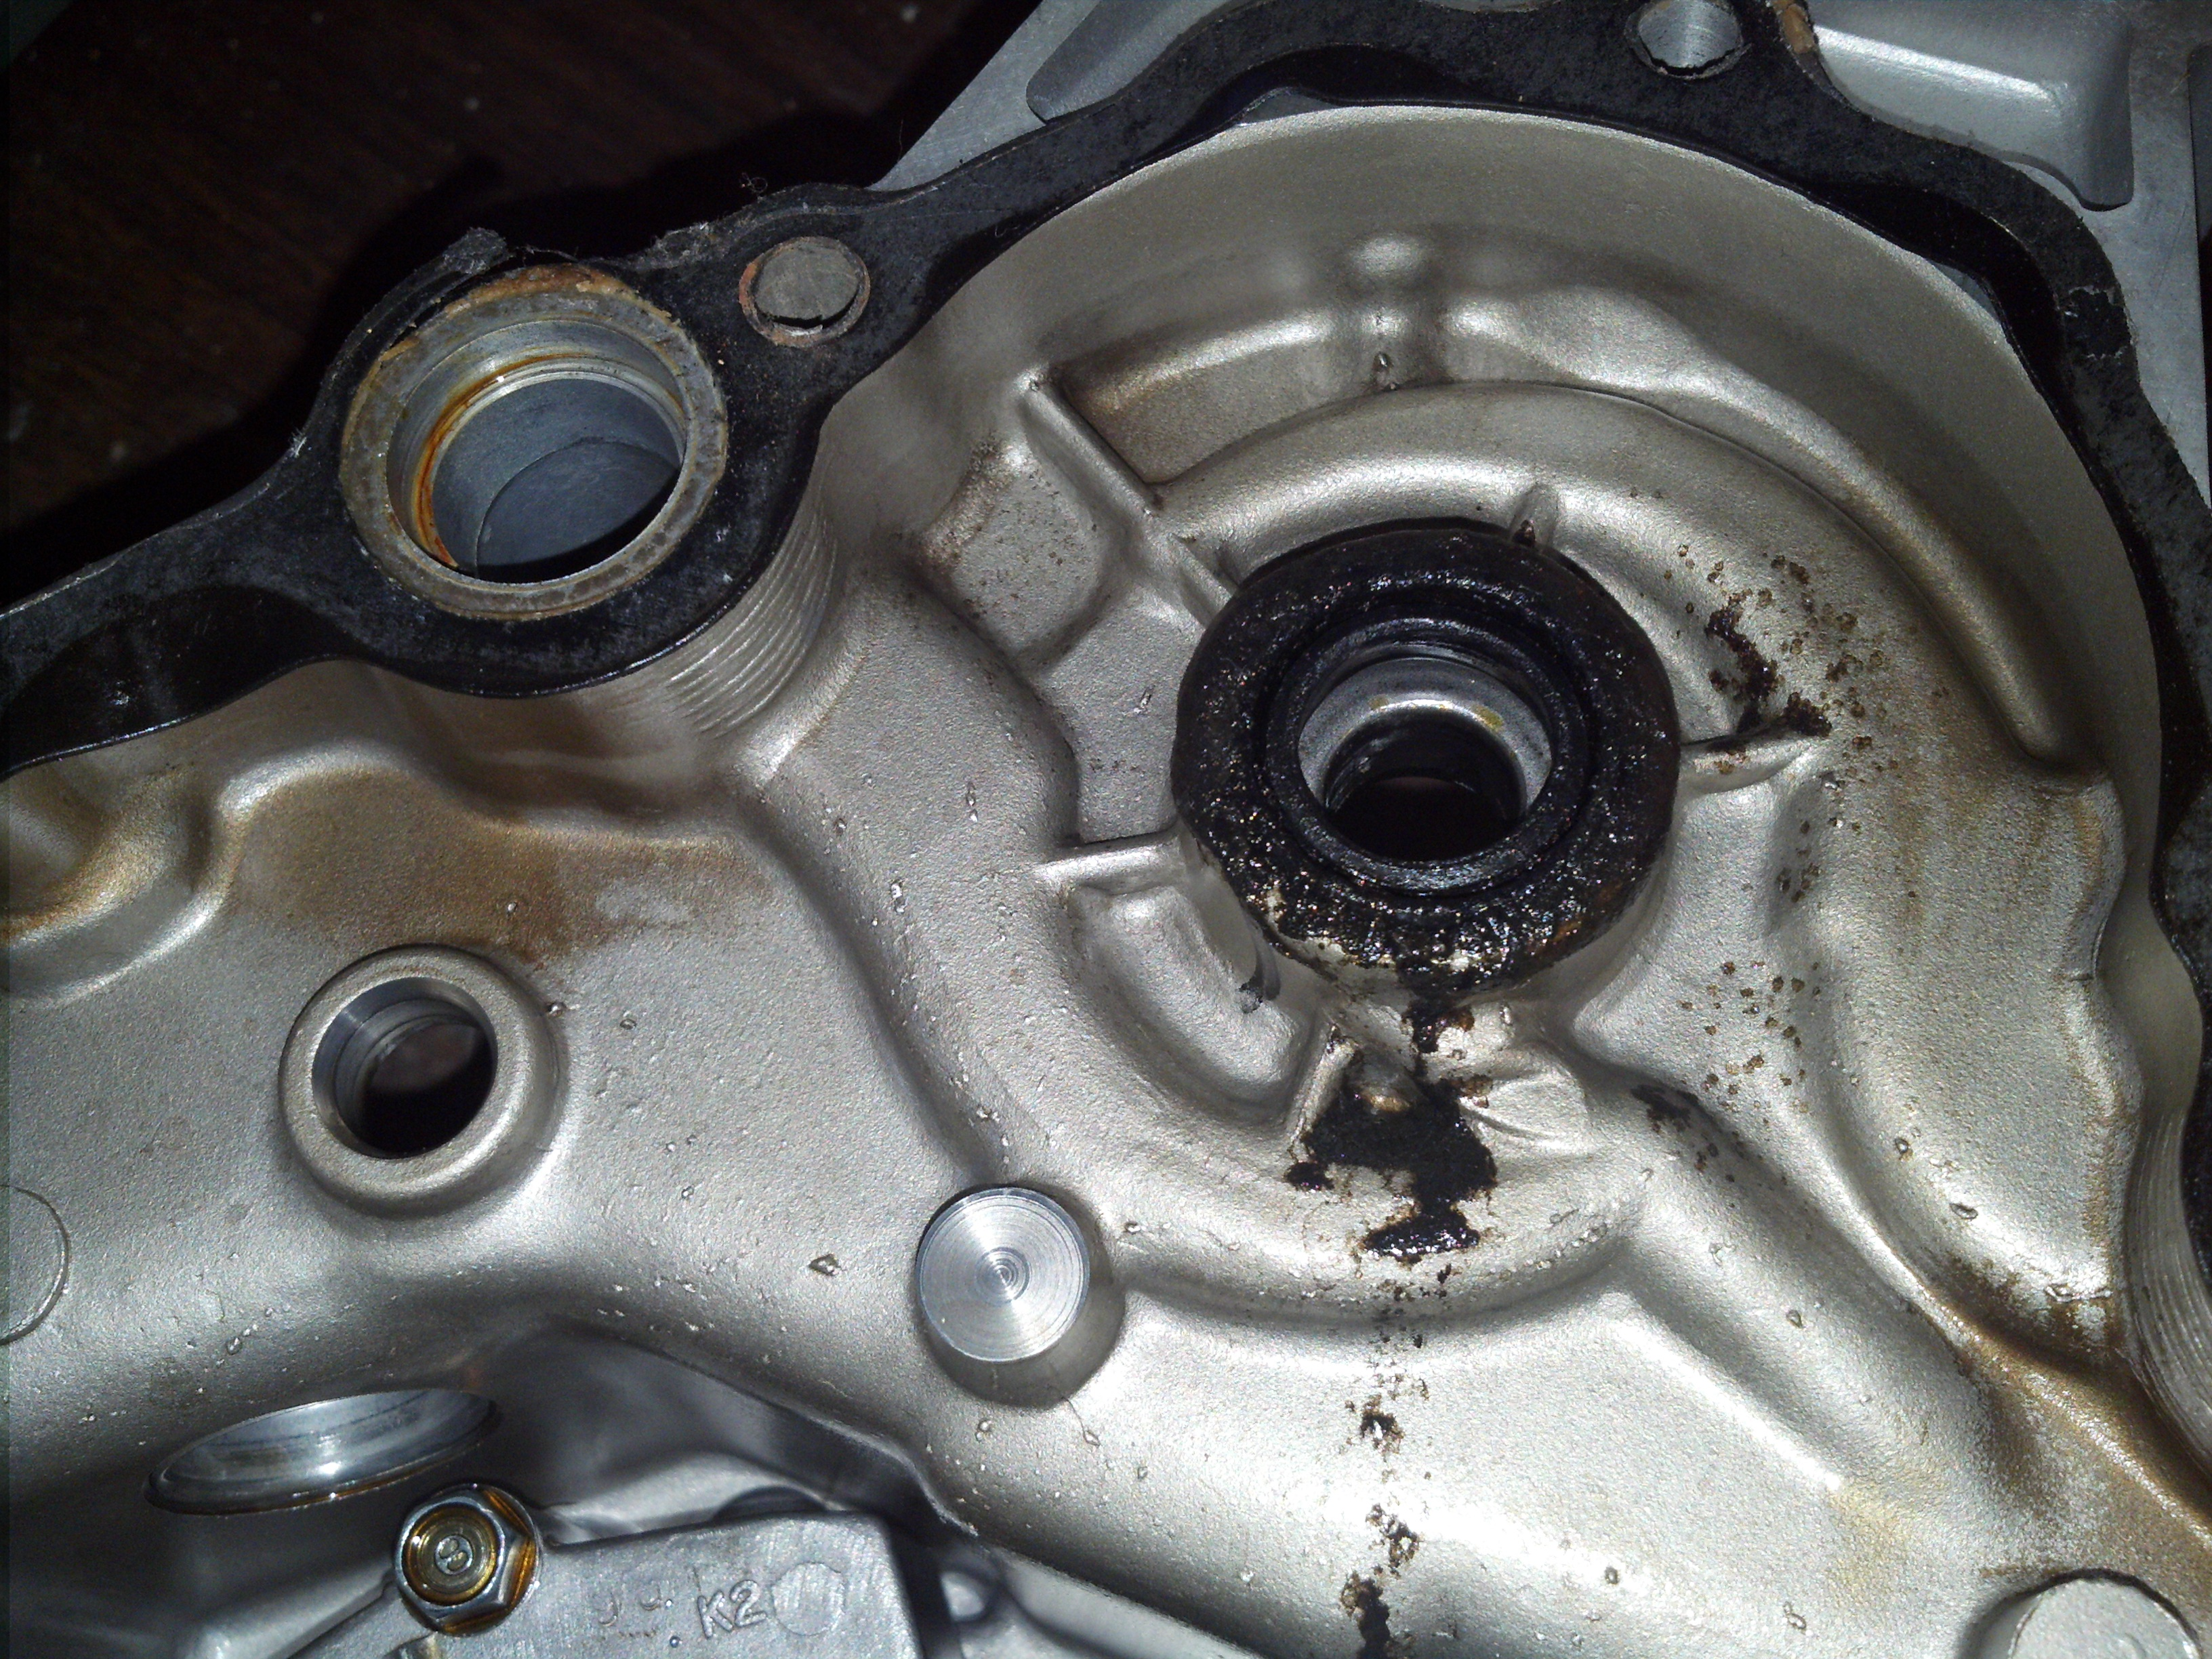 Cx500 stator and seal replacement for Water in motor oil